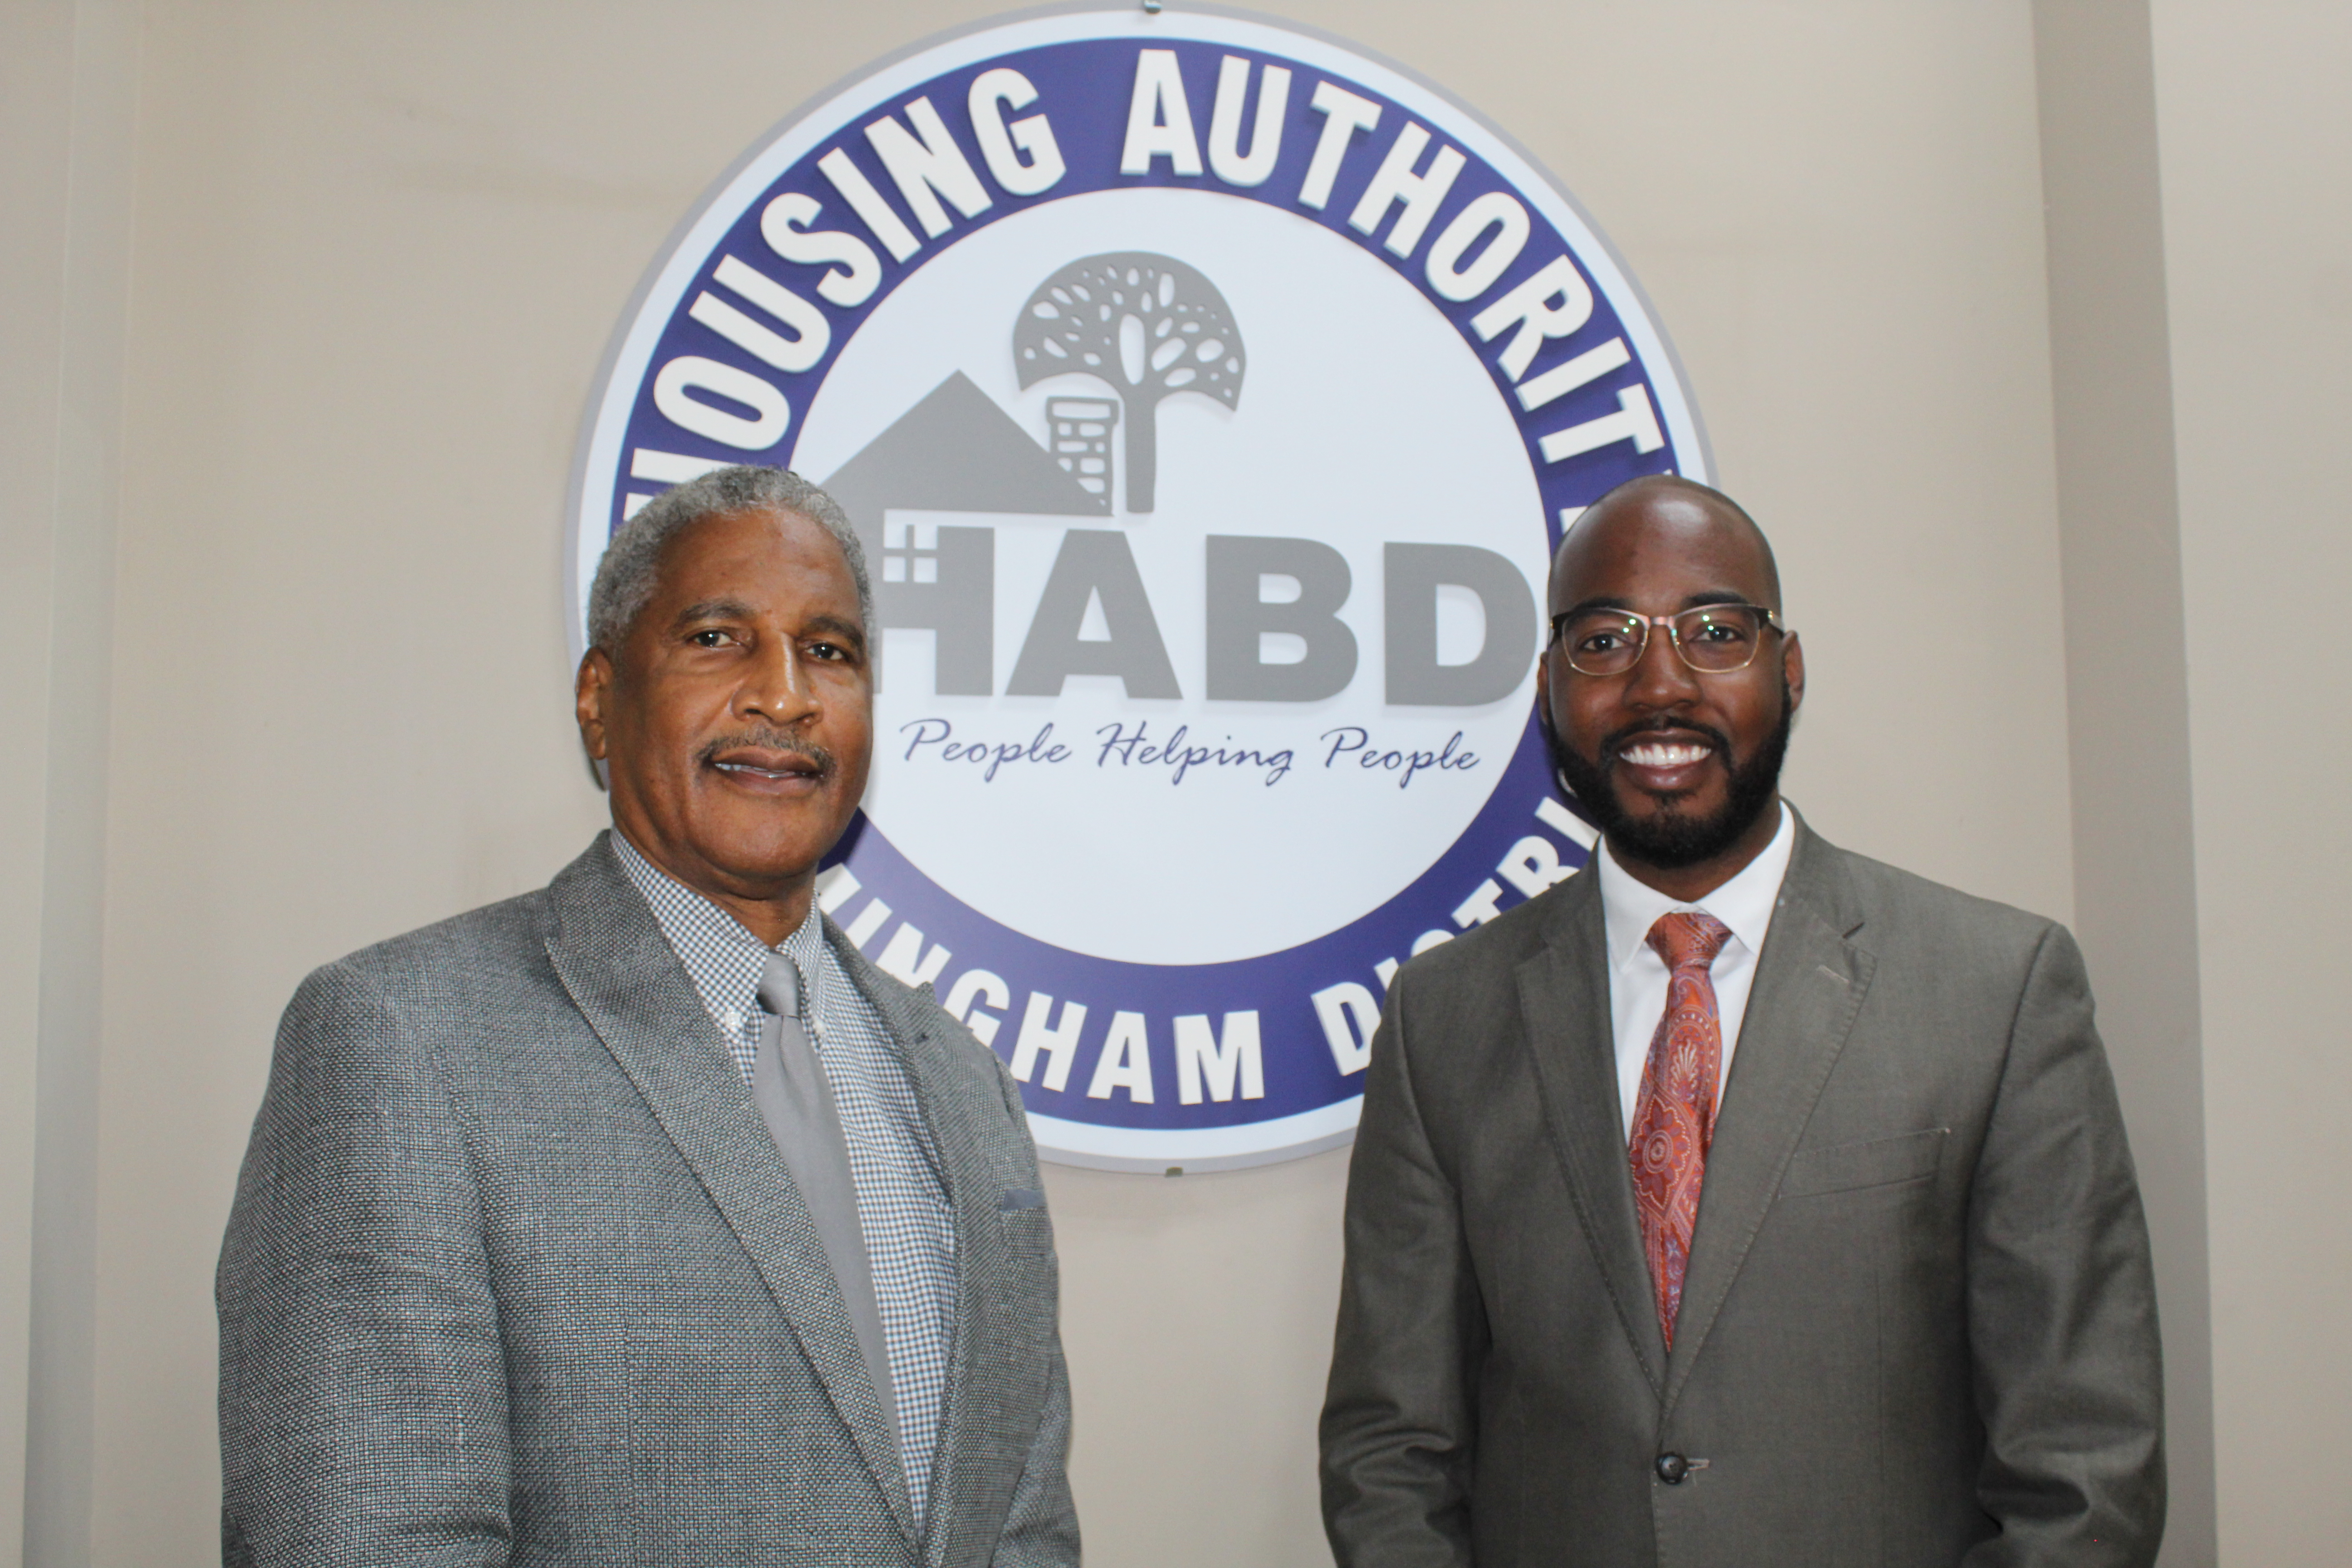 HABD Leaders on Capital Projects and Partnering with Non-Profits